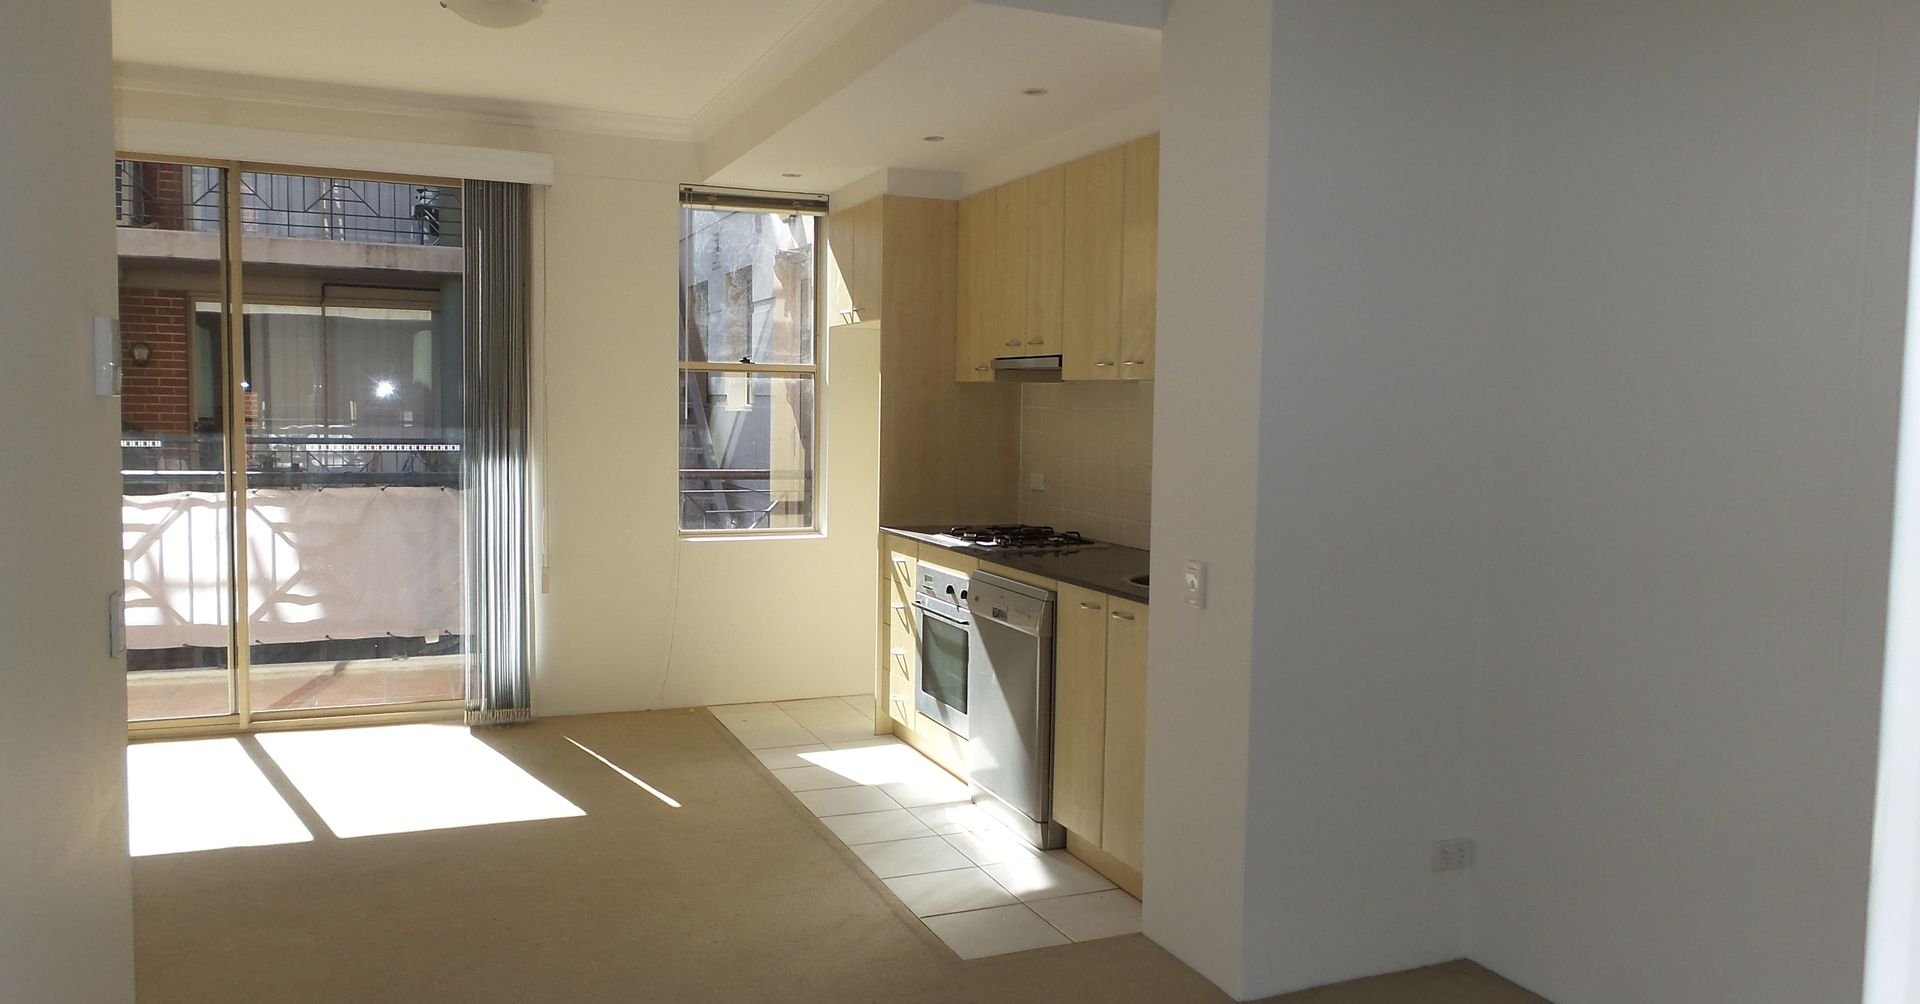 ERNEST PLACE, Crows Nest NSW 2065, Image 1